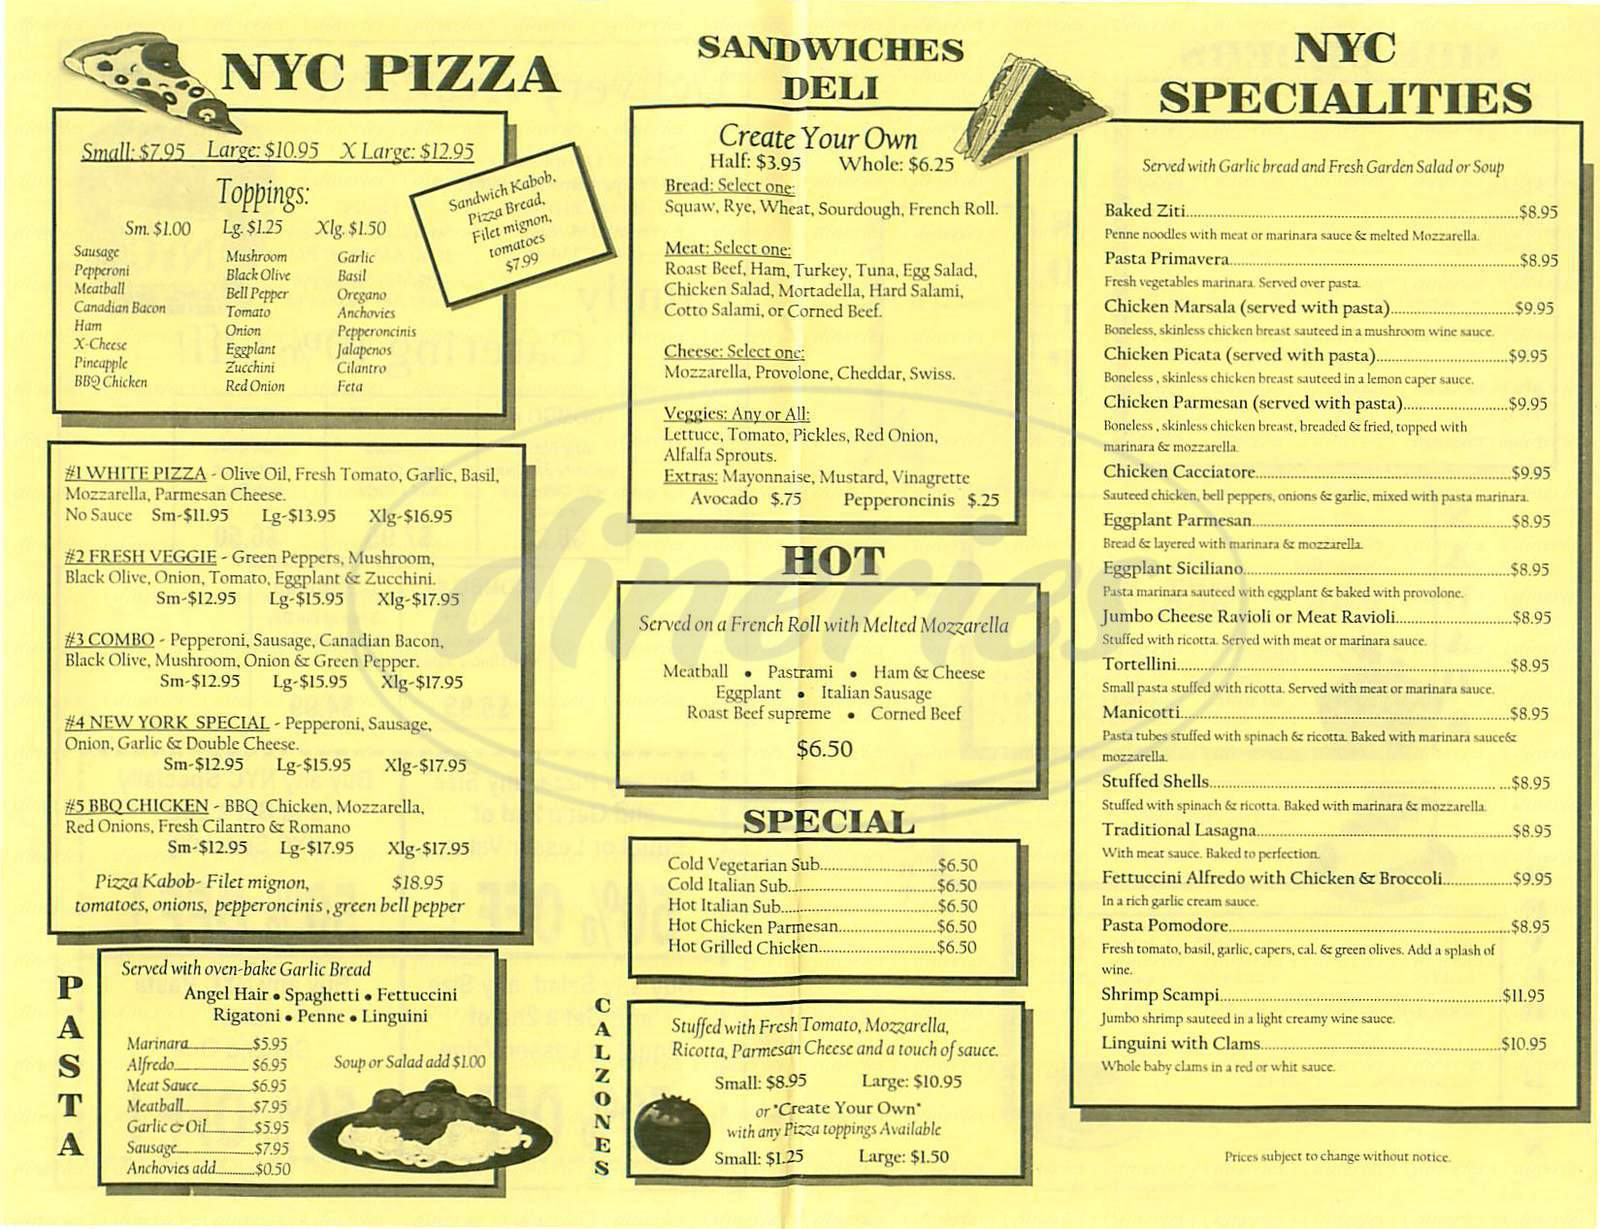 menu for NYC